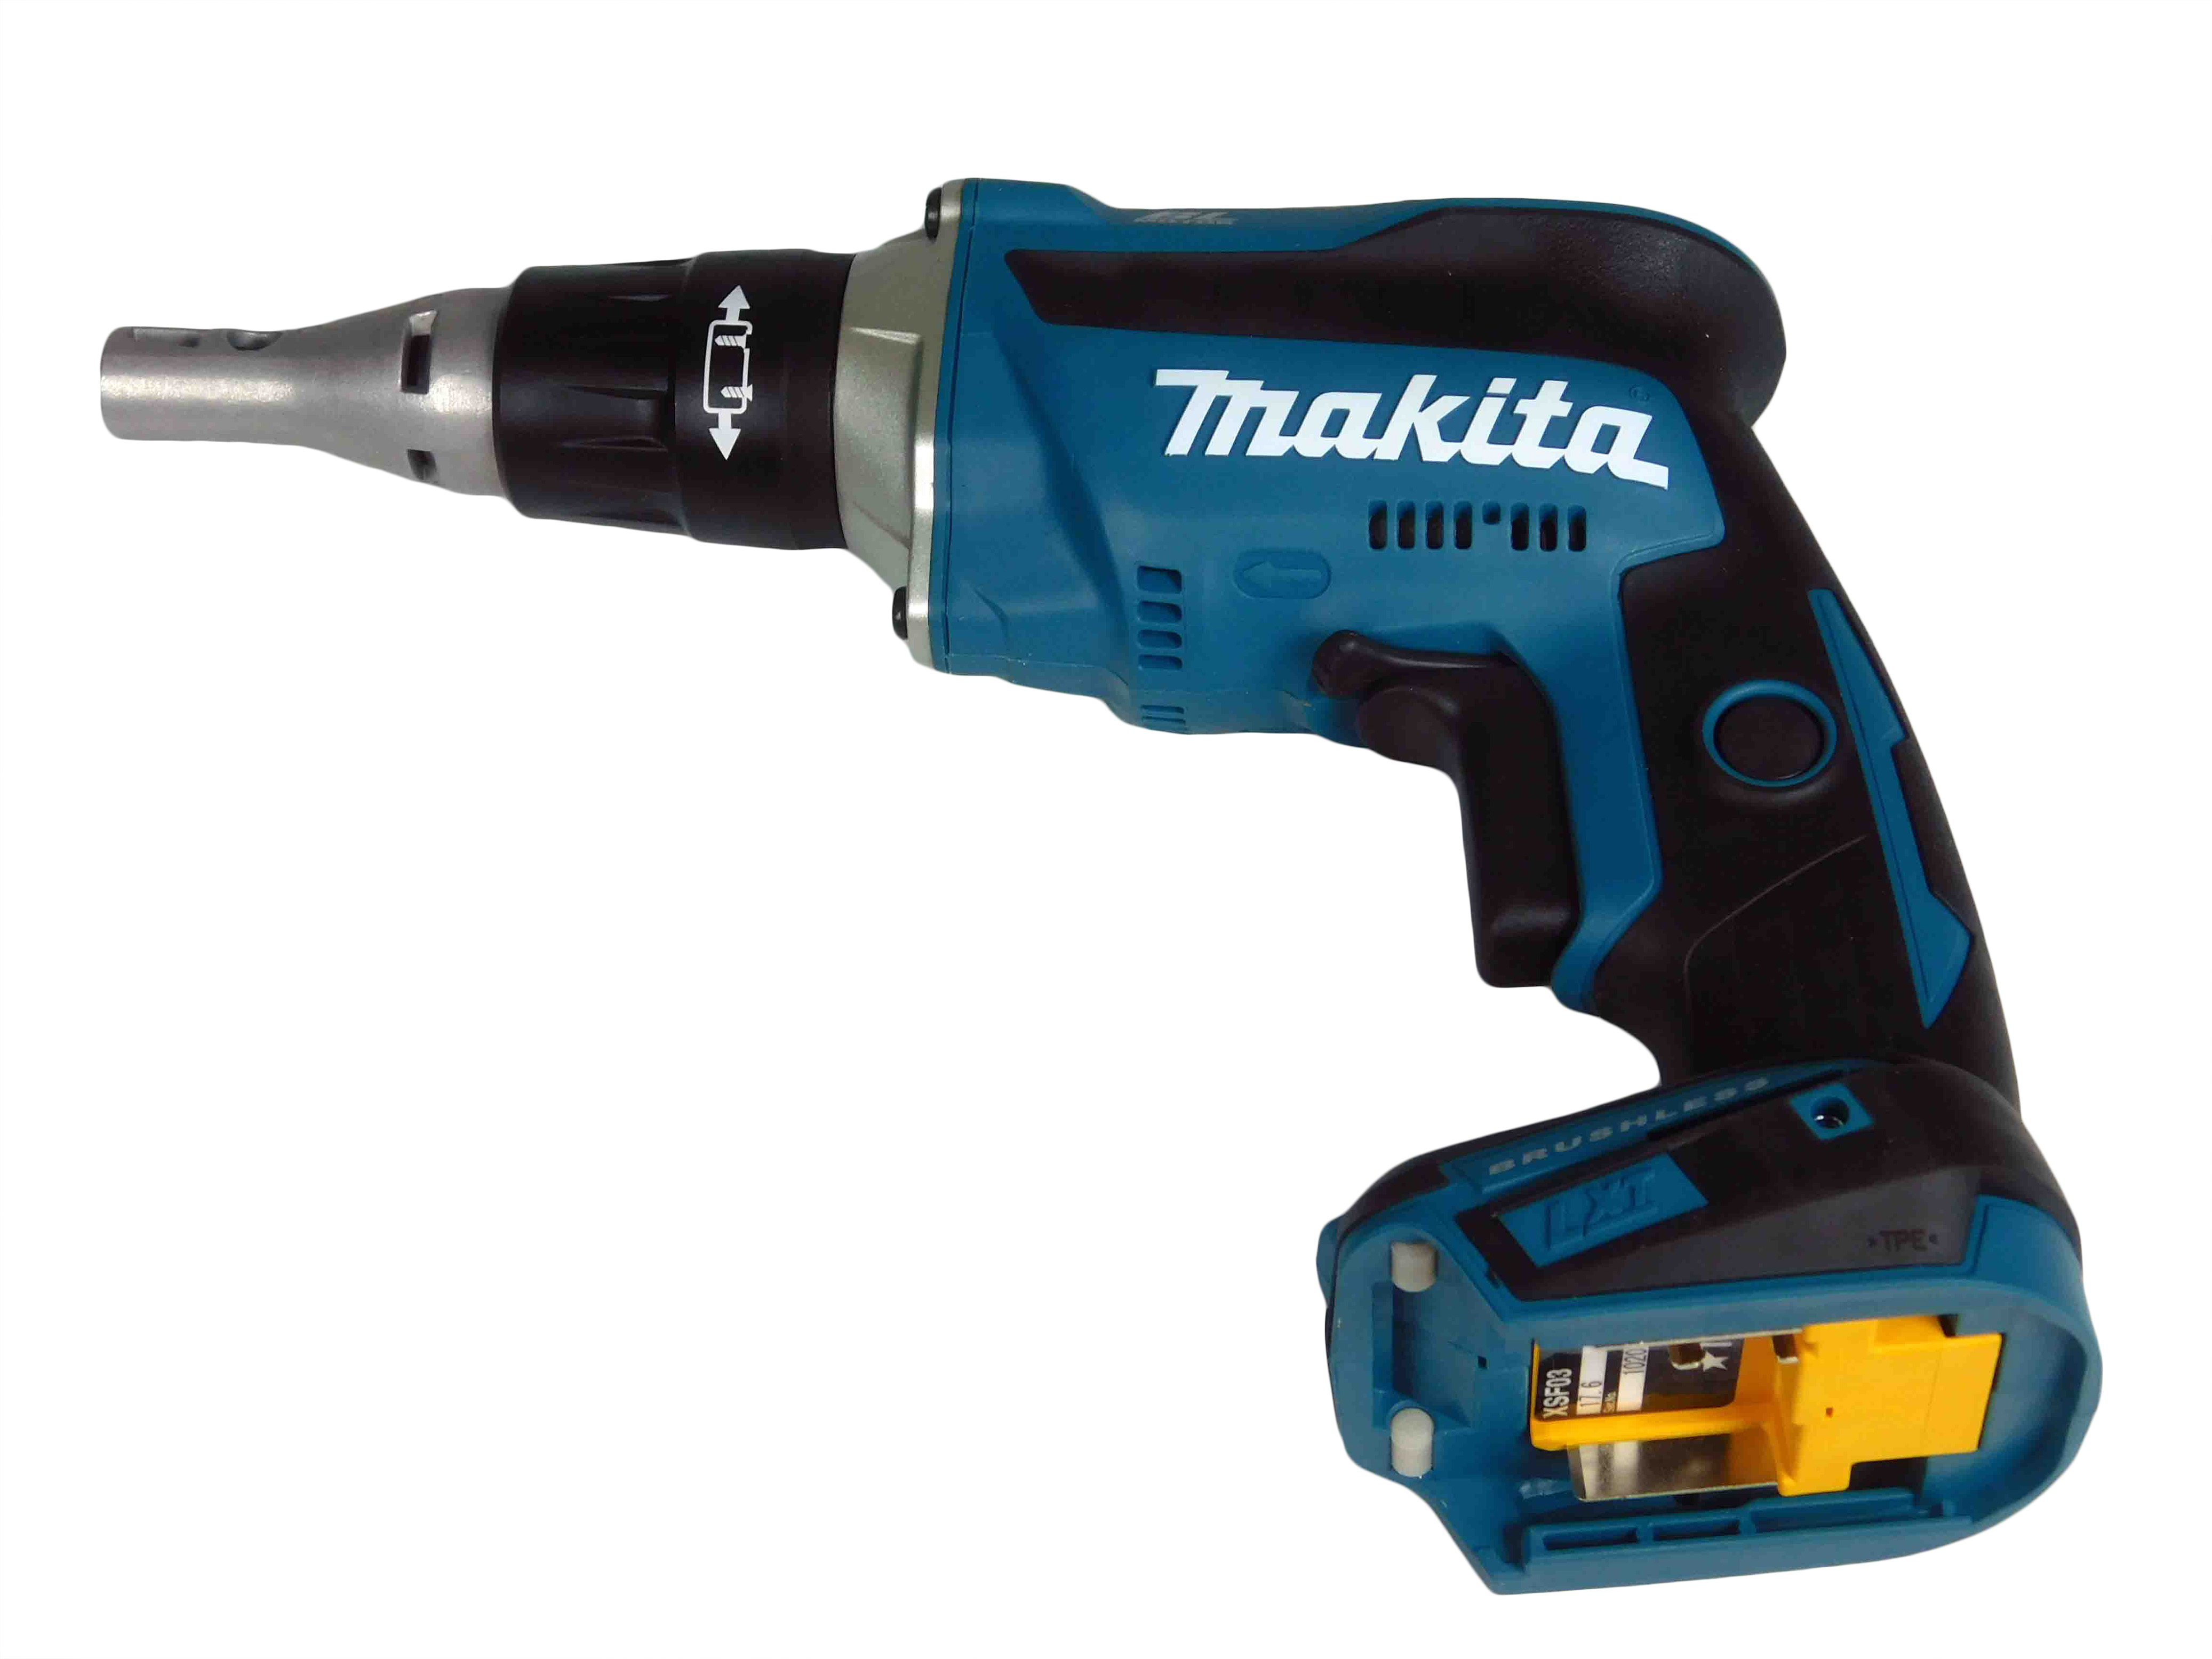 Makita-XSF03Z-18Volt-LXT-Lithium-Ion-Brushless-Cordless-Drywall-Screw-Driver-image-4